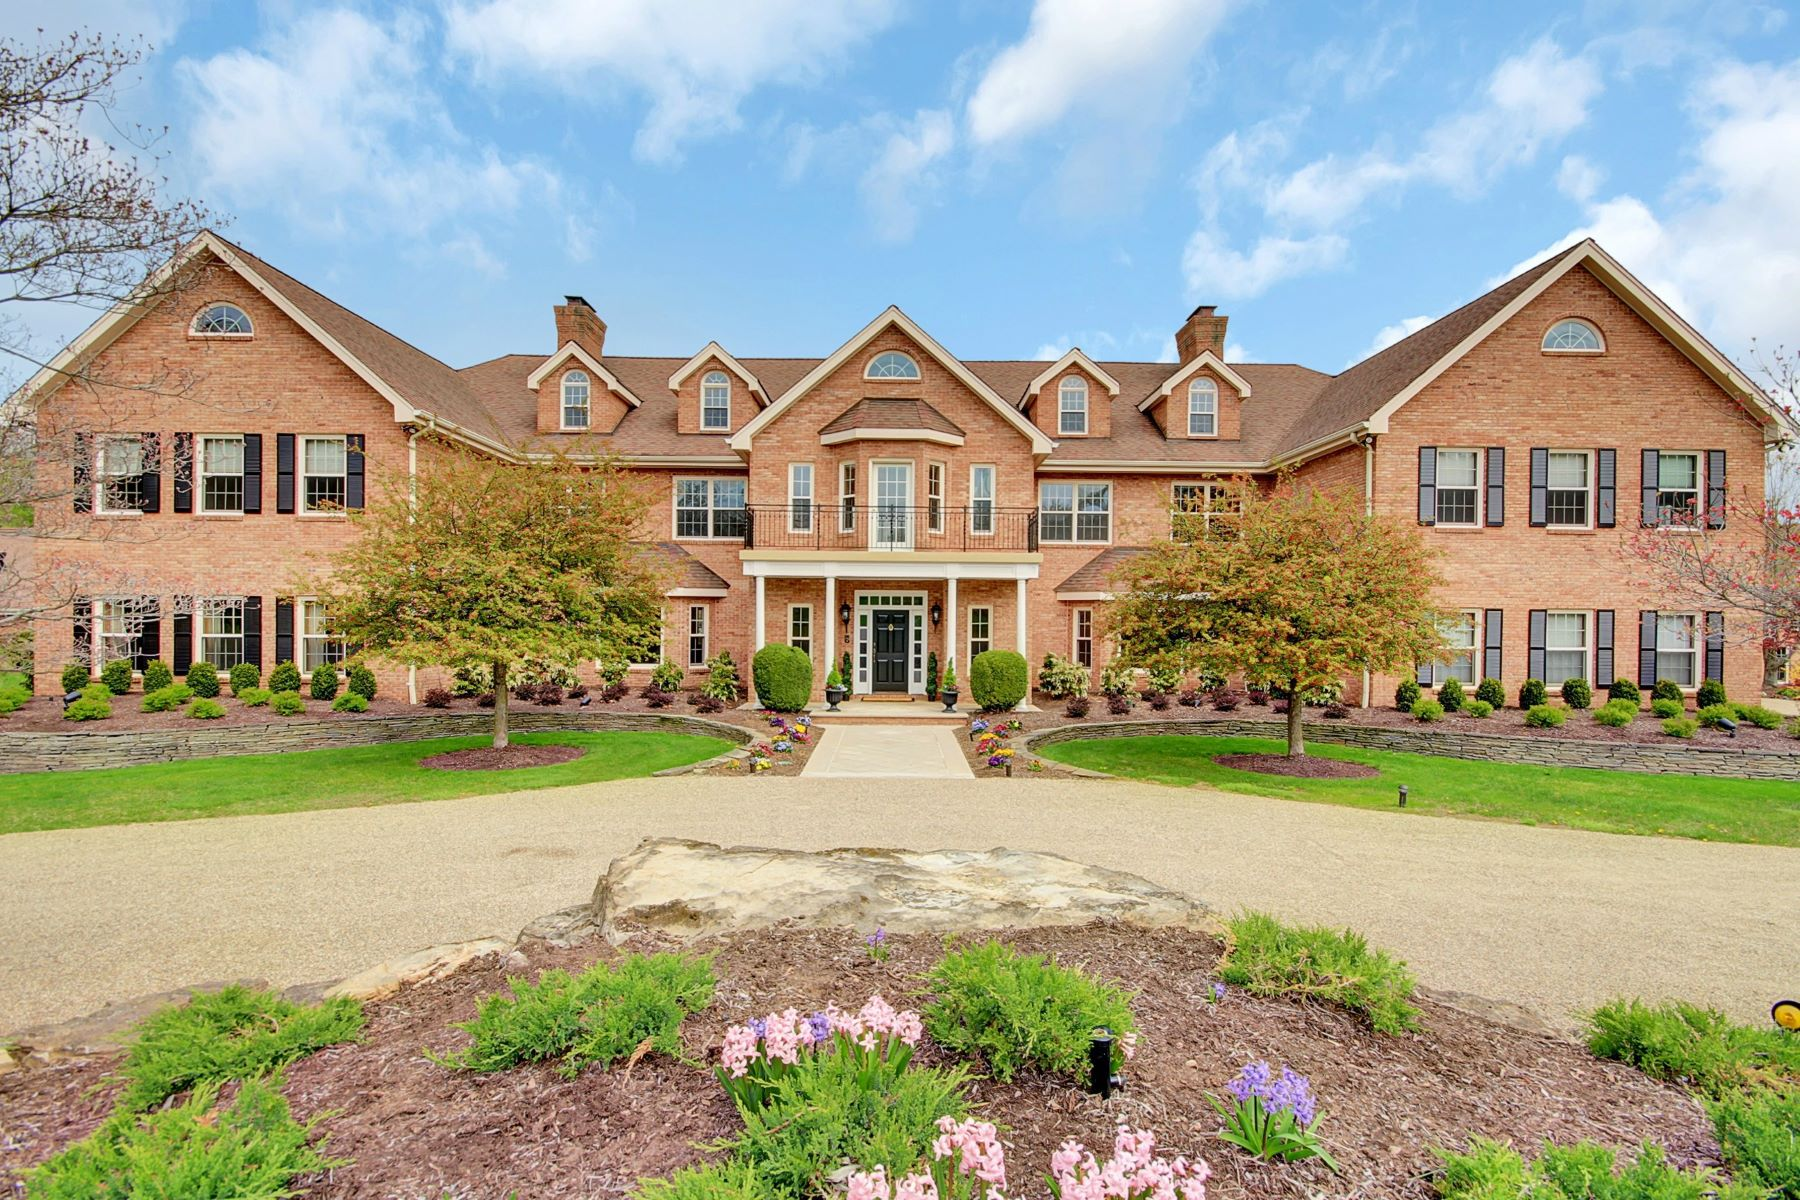 Villa per Vendita alle ore Sophisticated Country Living 23 Welsh Lane Harding Township, New Jersey 07976 Stati Uniti